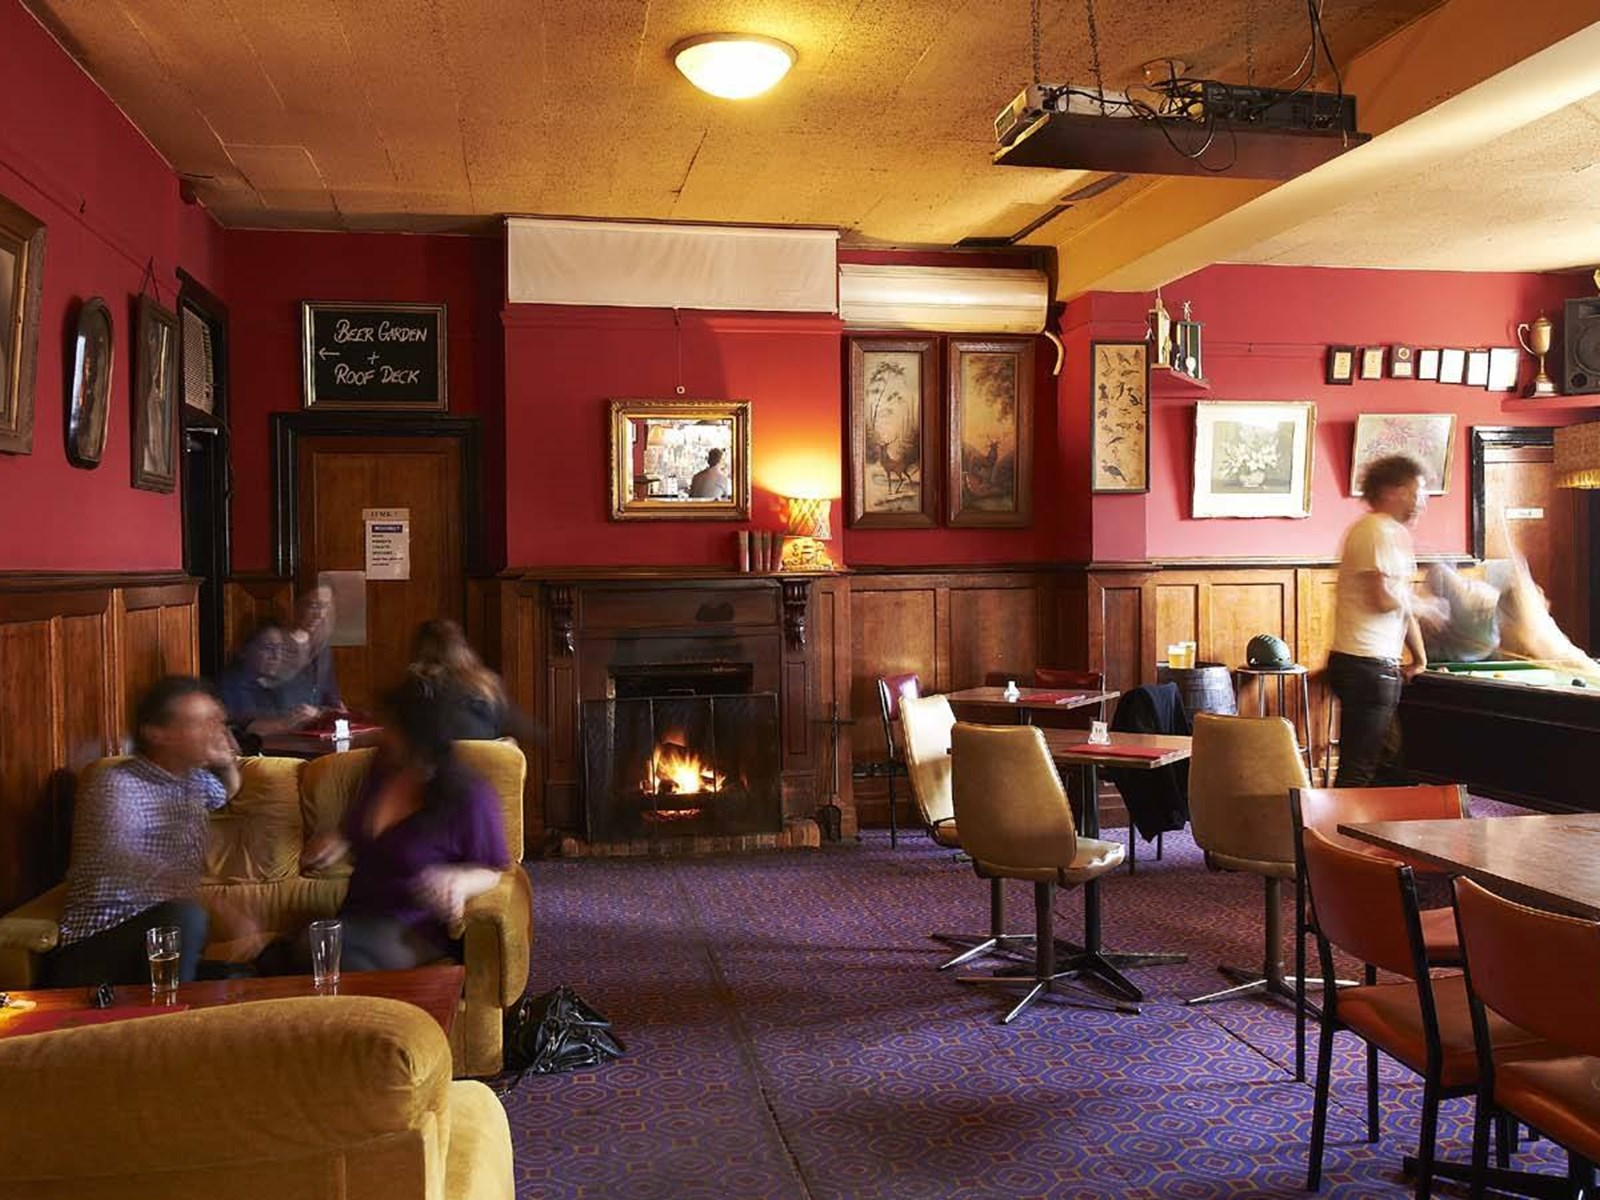 Union Club Hotel lounge with fireplace, Fitzroy, Melbourne, Victoria, Australia